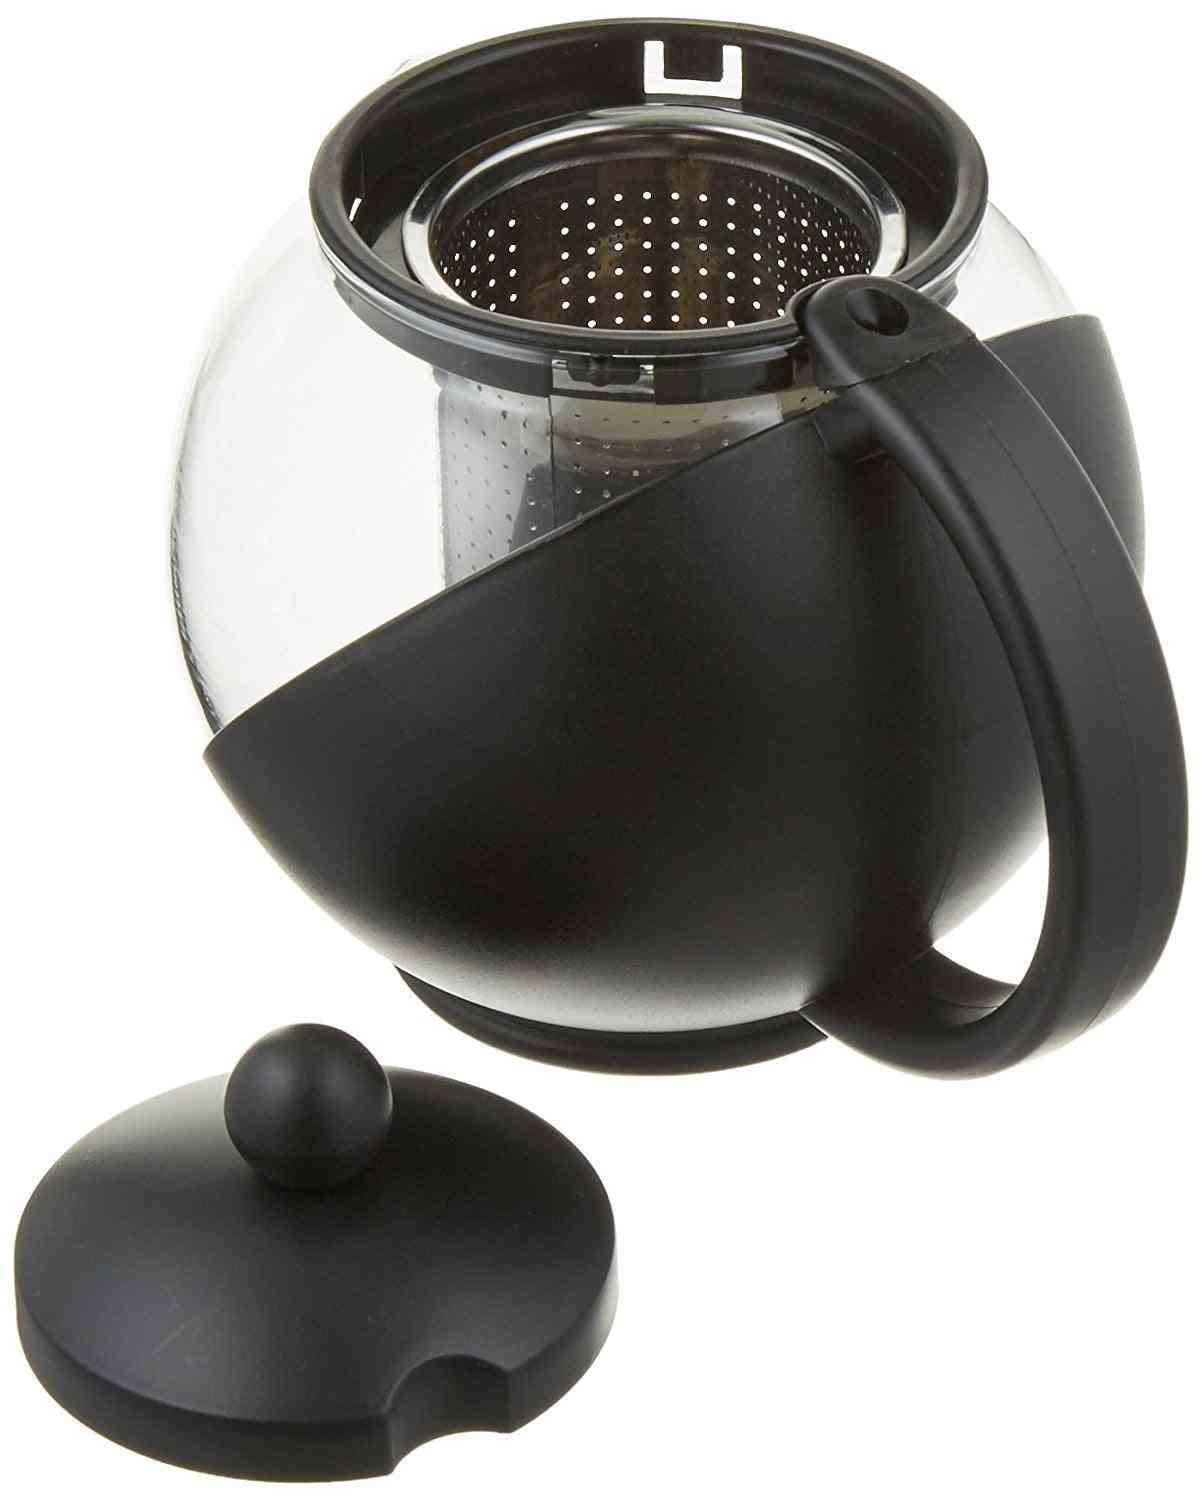 Tempered Glass Tea Pot With Removable Steel Infuser